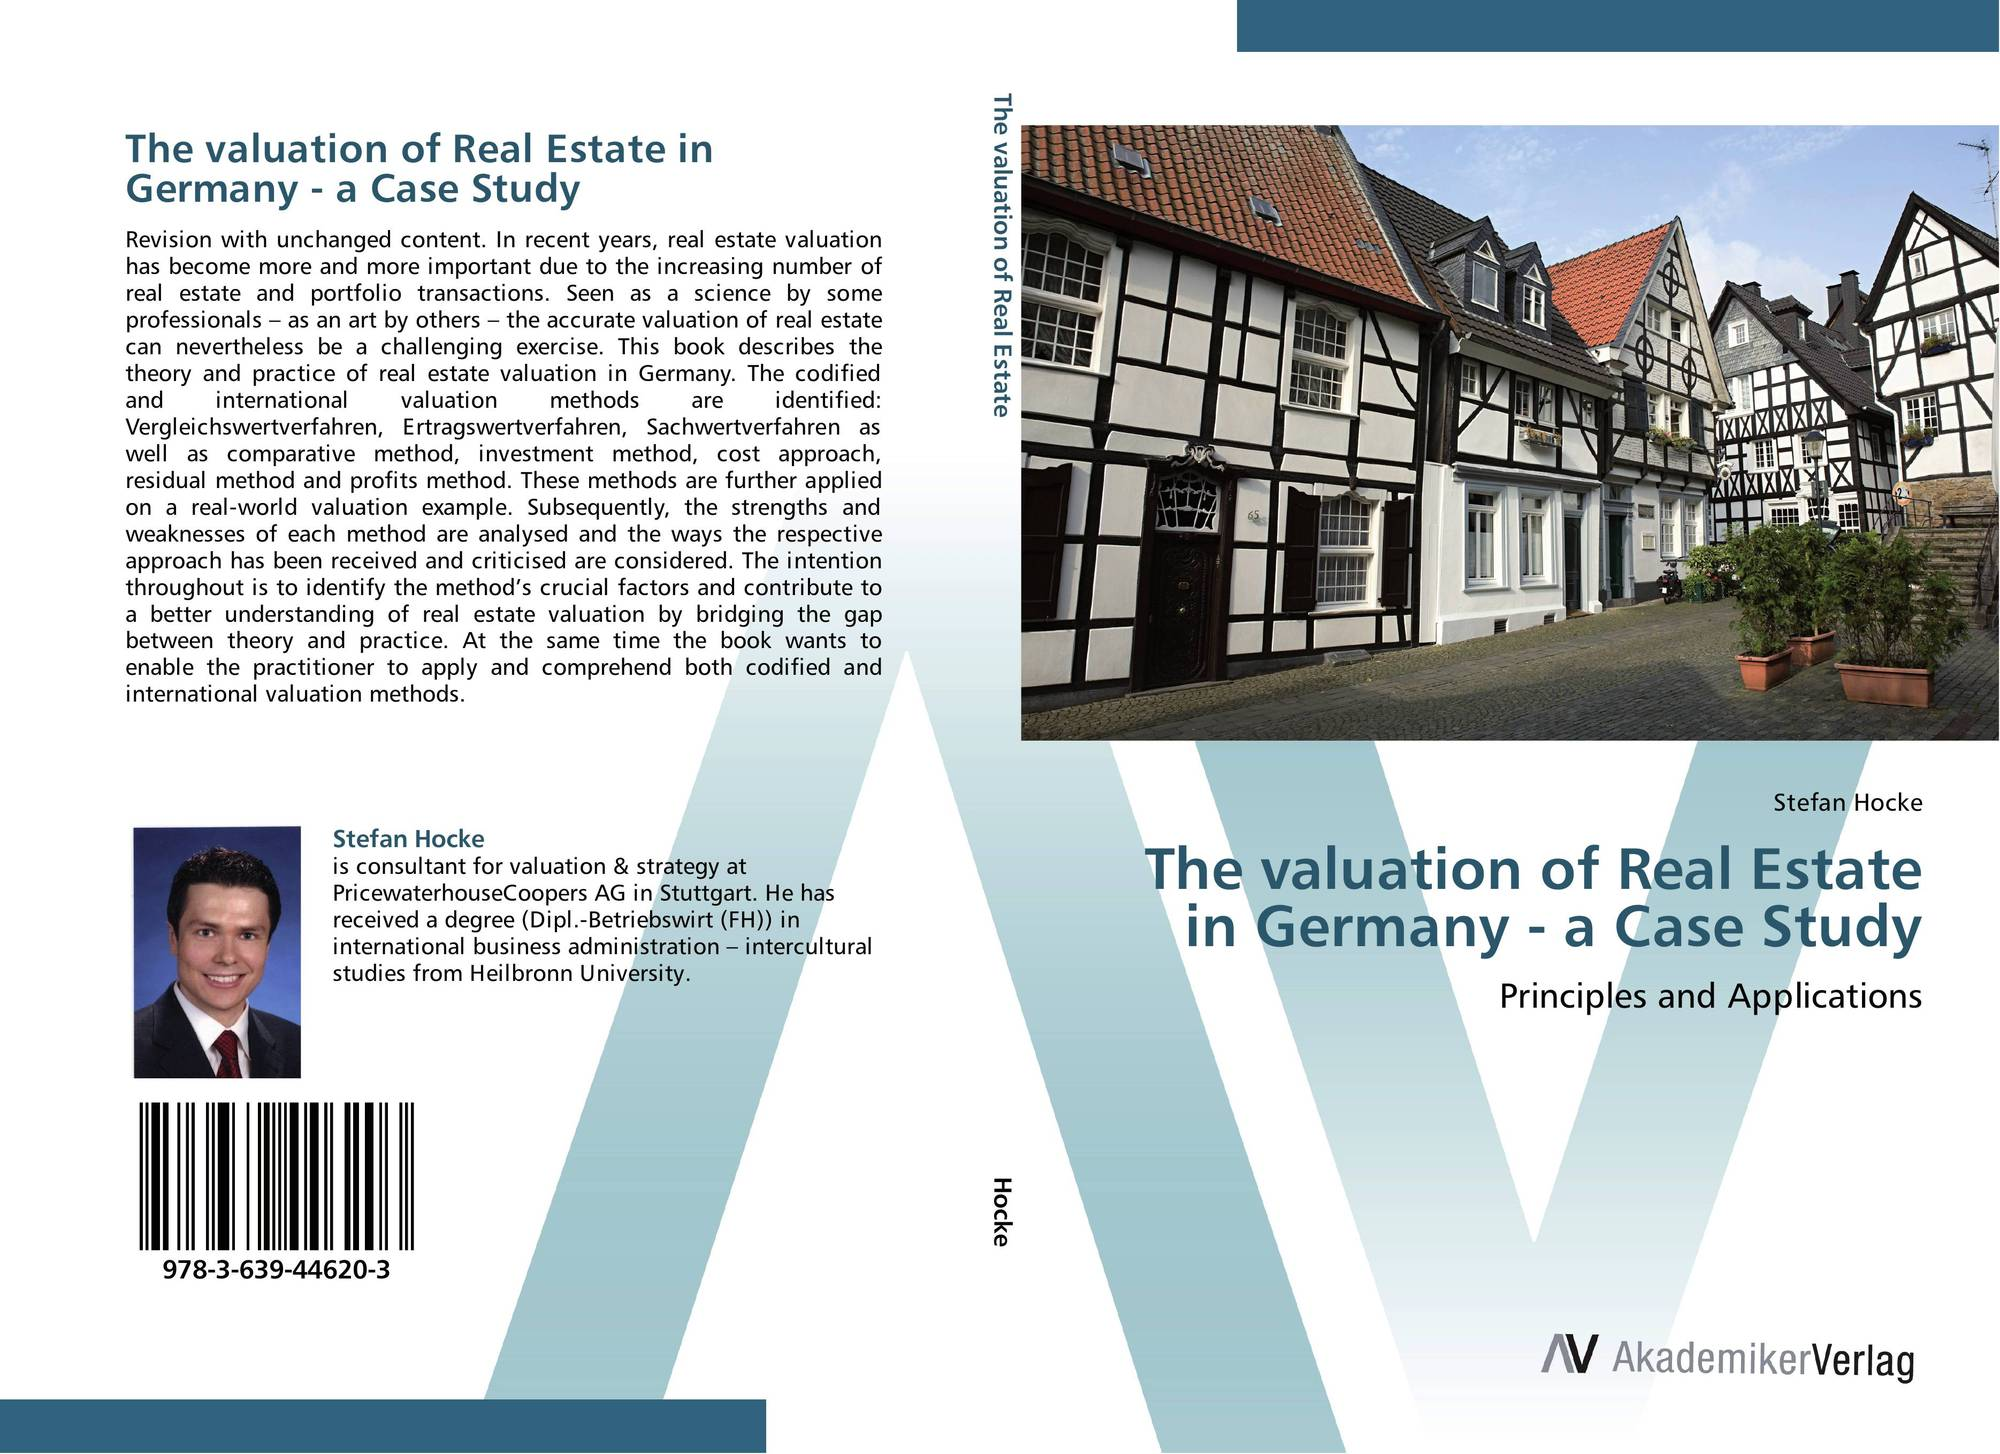 The valuation of Real Estate in Germany - a Case Study, 978